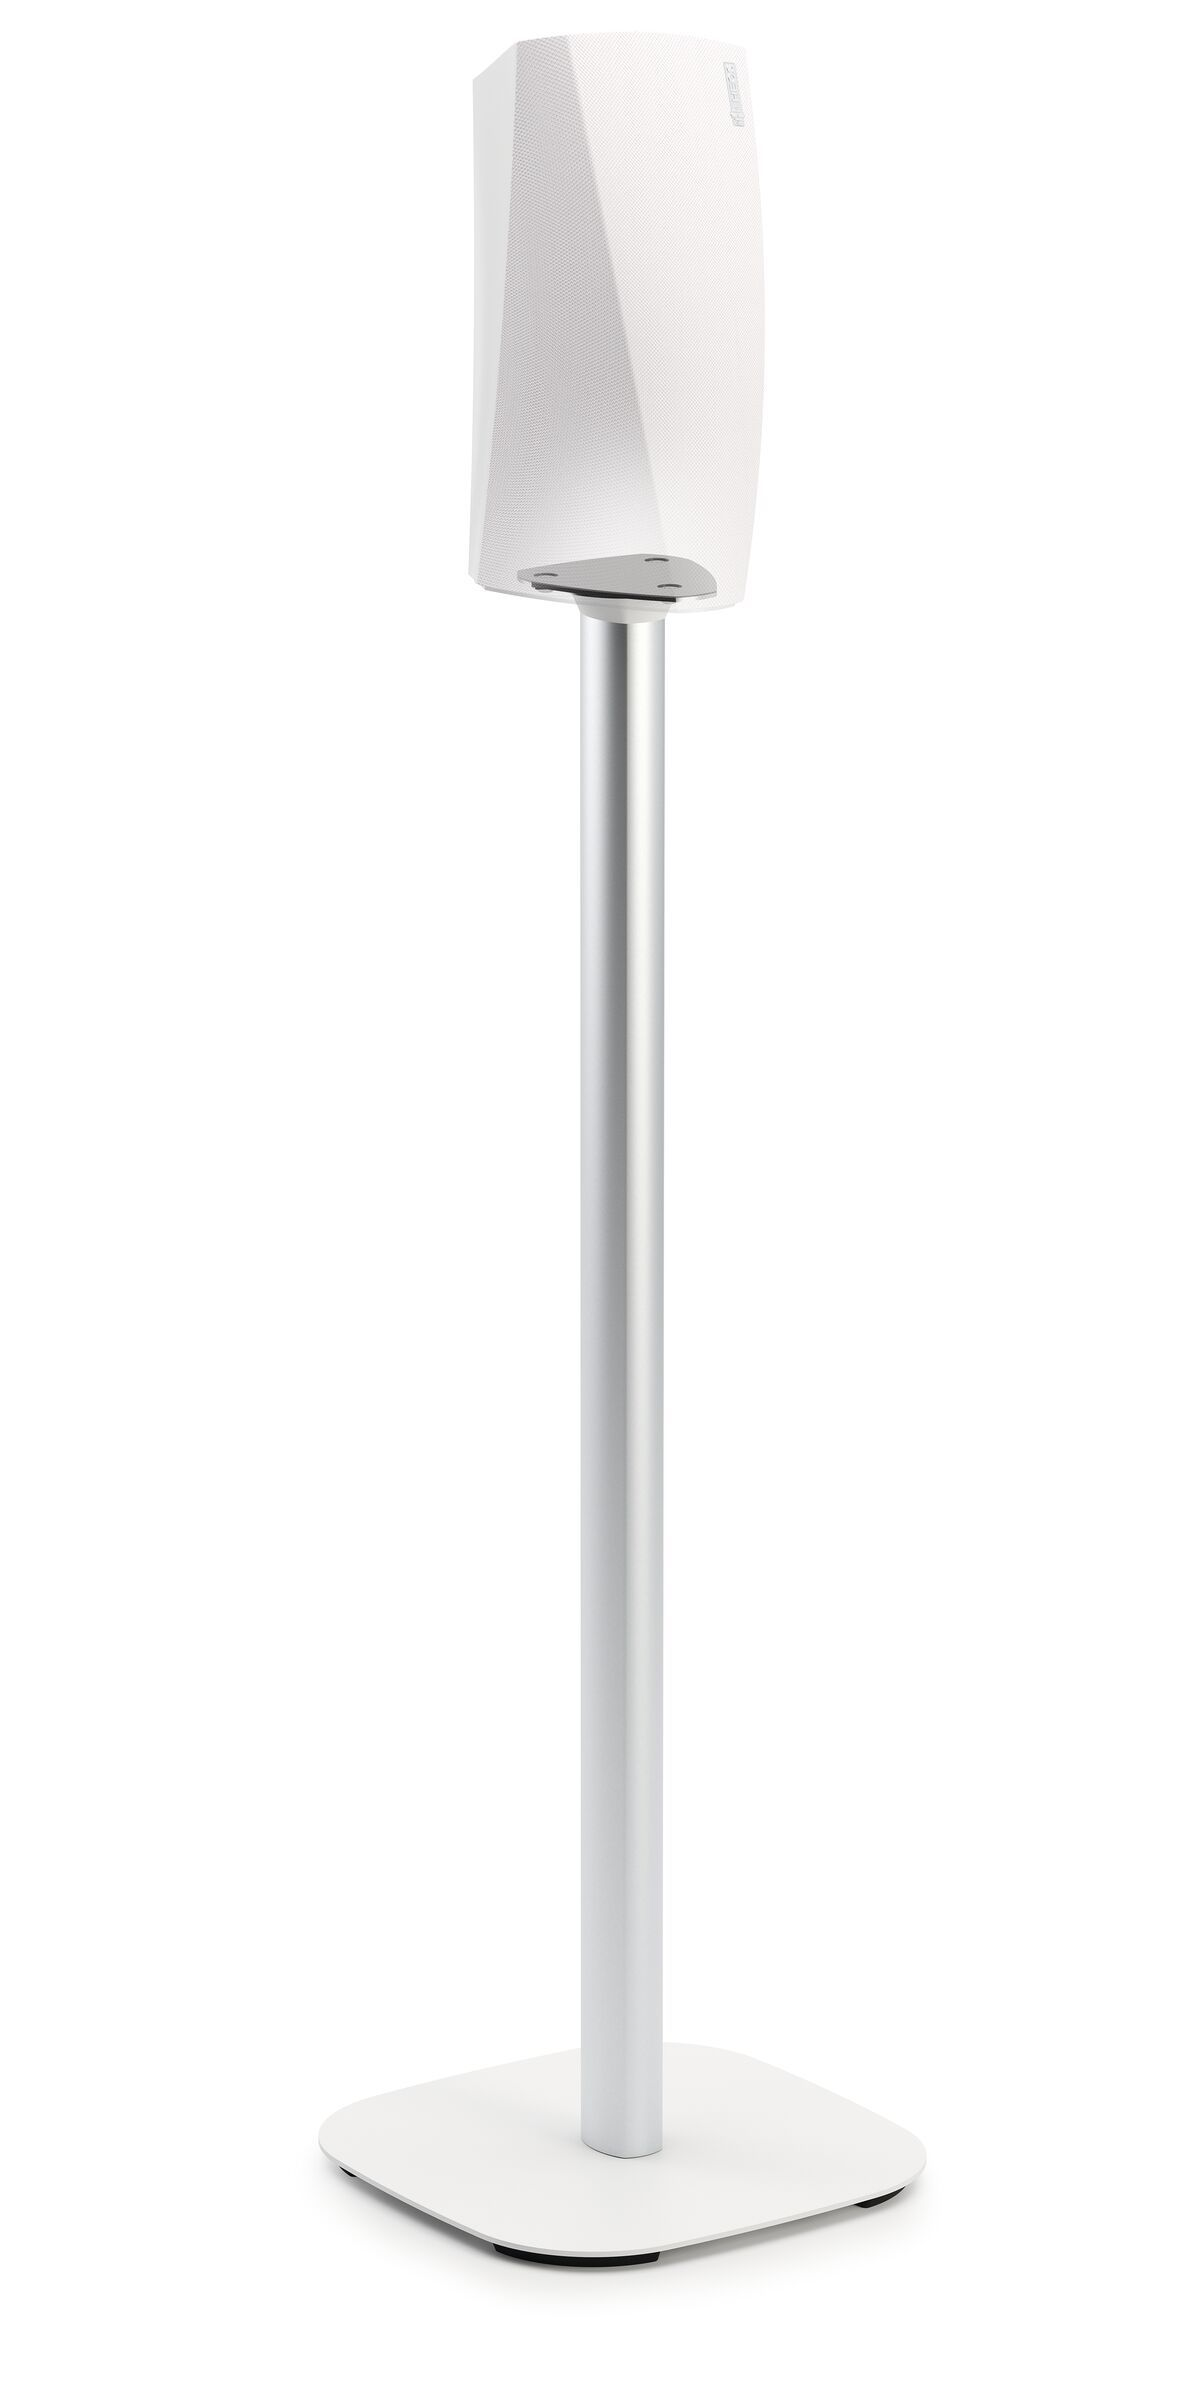 Vogel's SOUND 5313 Speaker Stand for Denon HEOS 1 / HEOS 3 (white) - Application